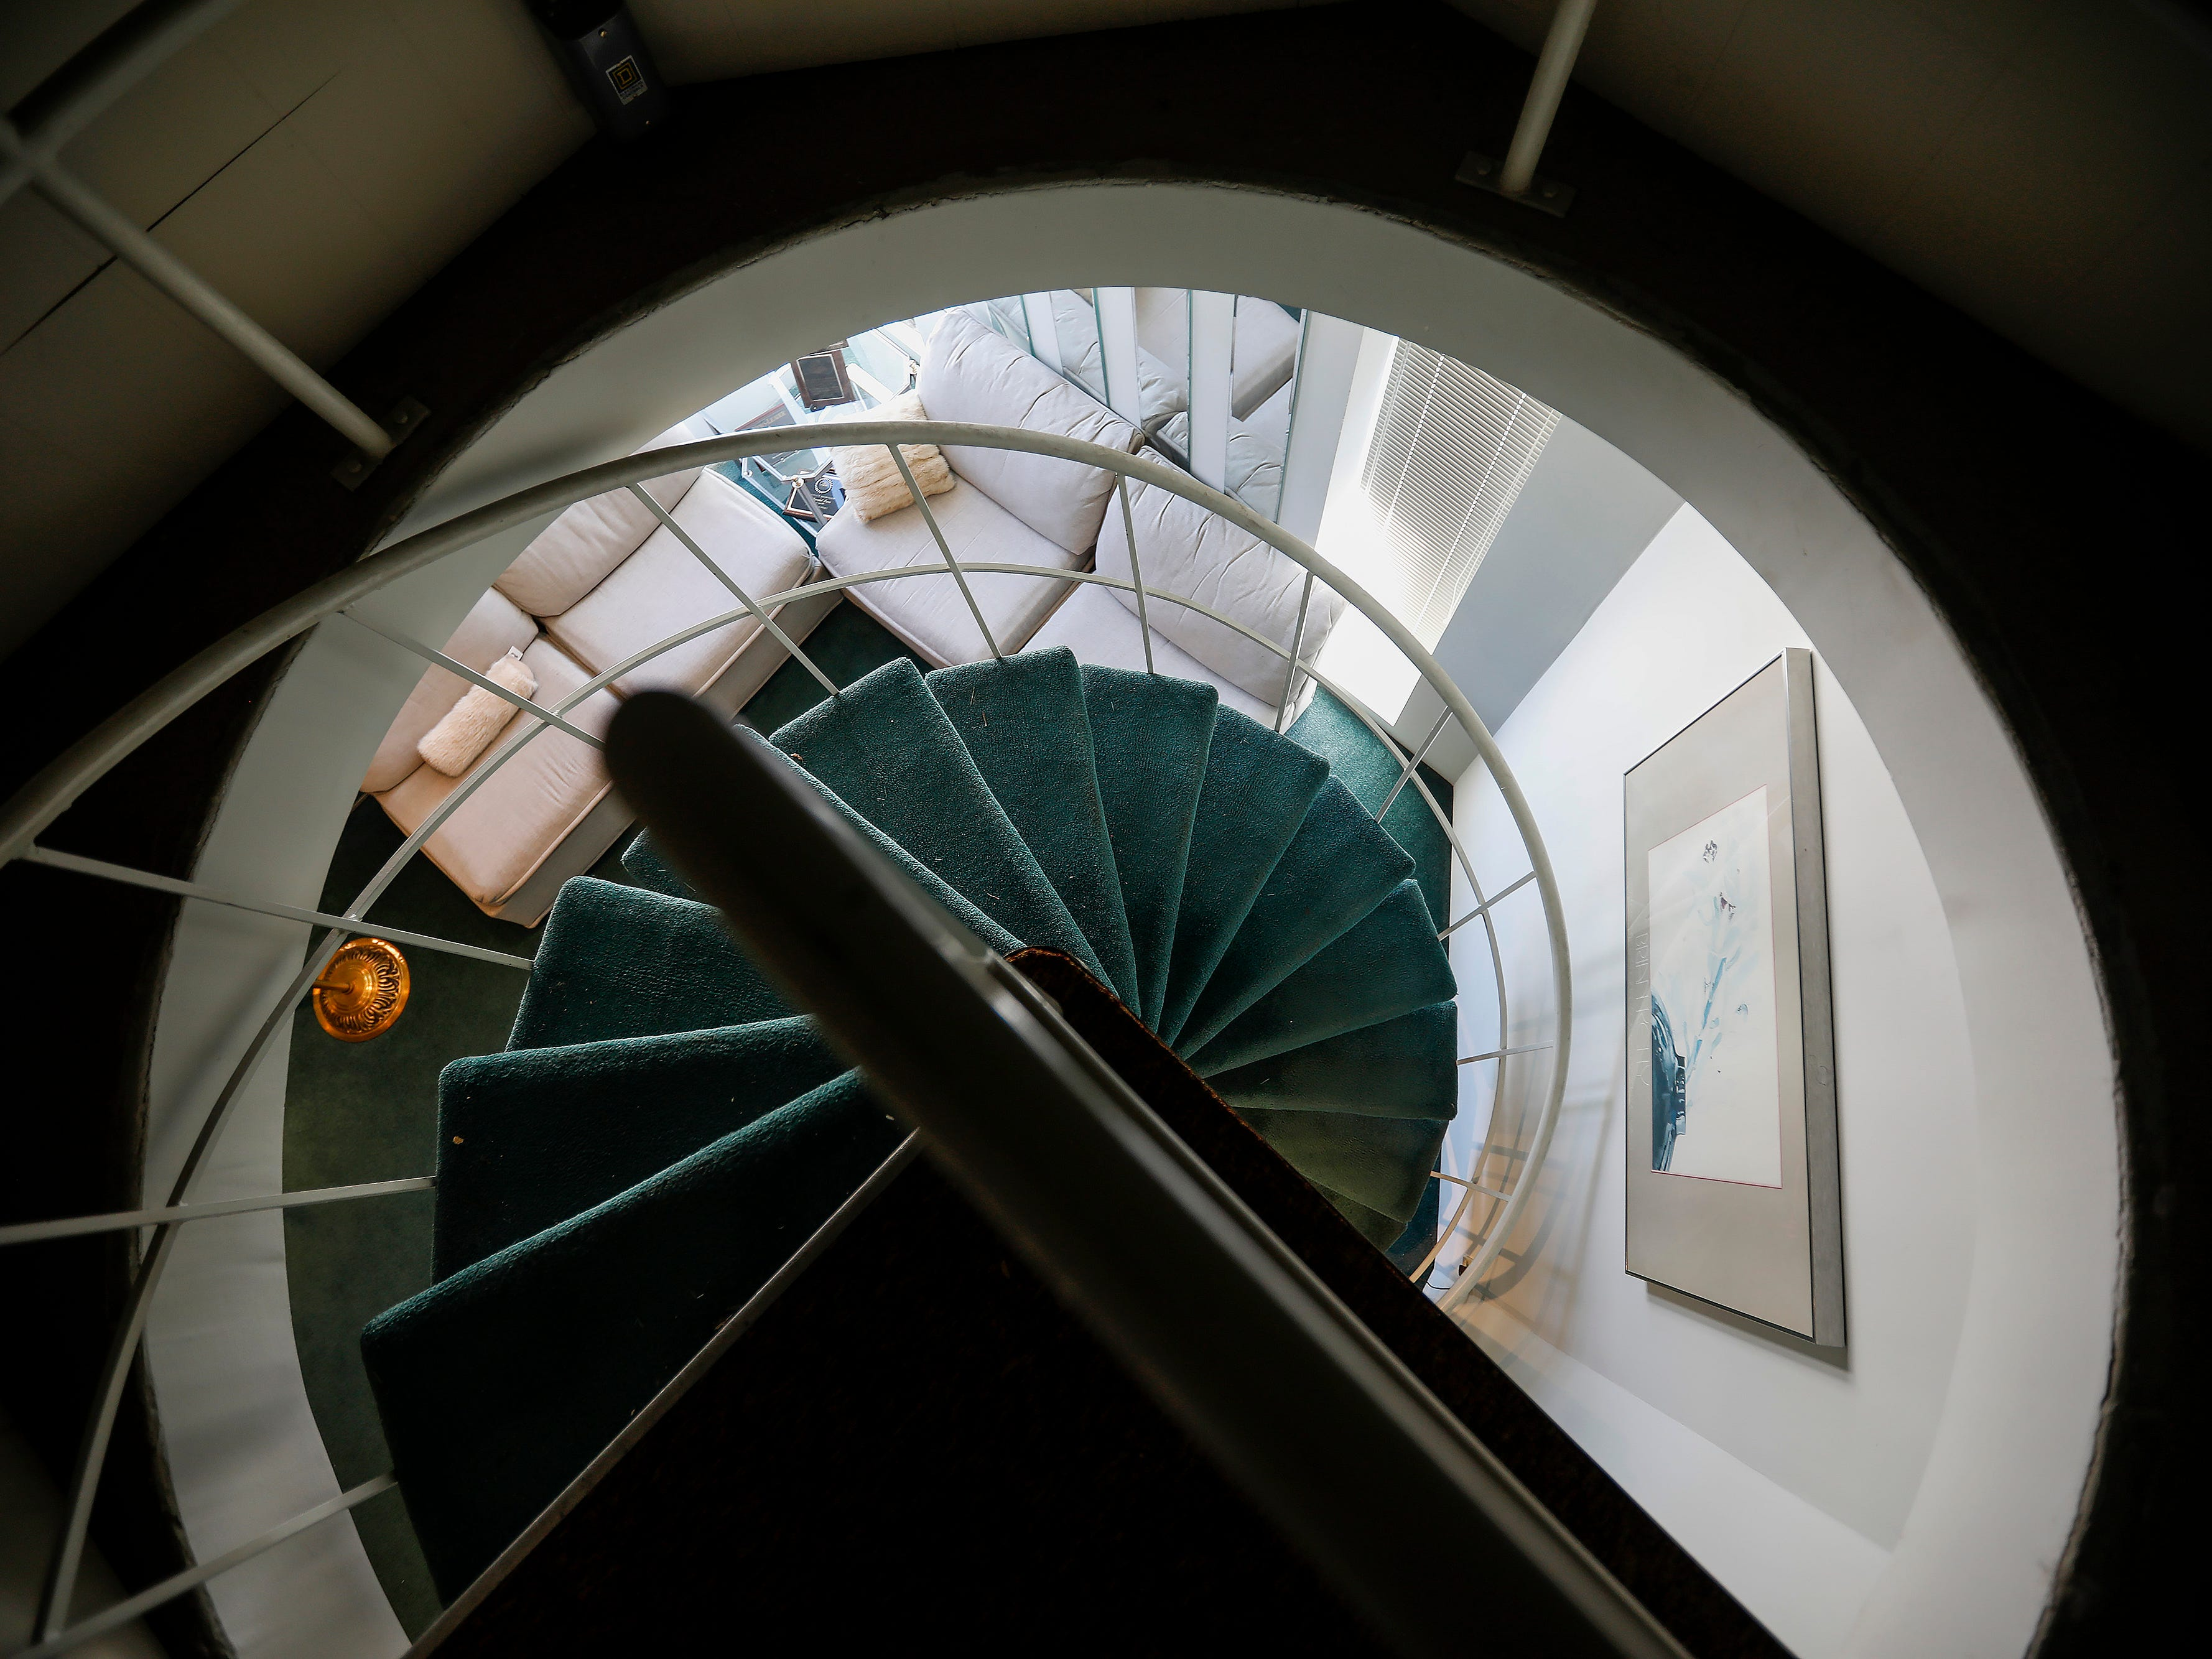 Looking down the spiral staircase at McDaniel Furs, located at 901 S. Glenstone Ave.